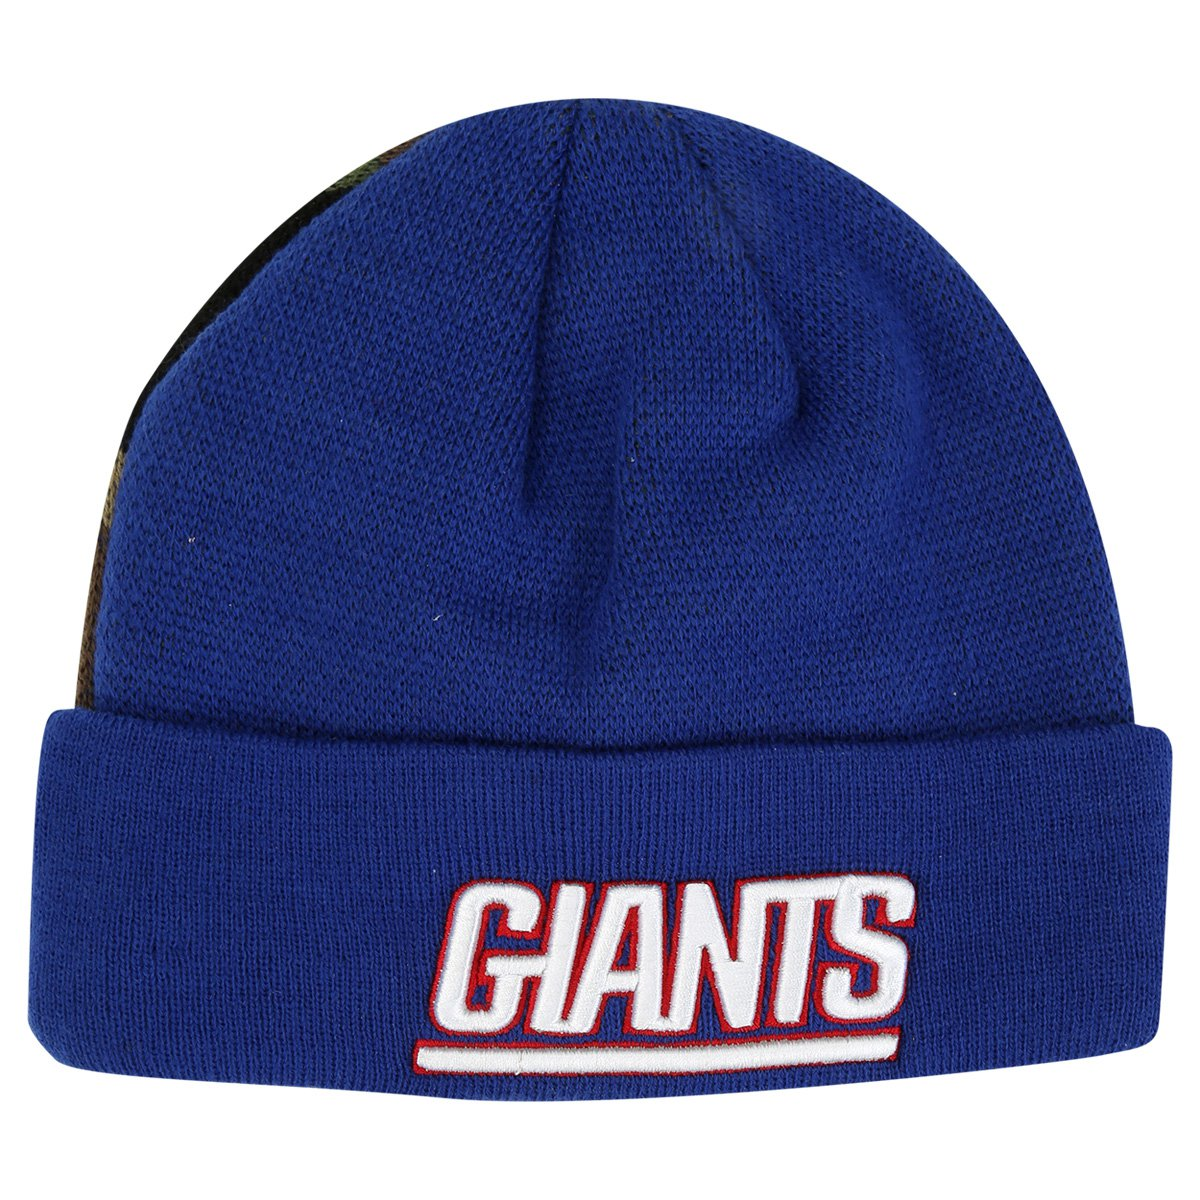 Gorro New Era NFL New York Giants OTC - Compre Agora  e1eec50f867